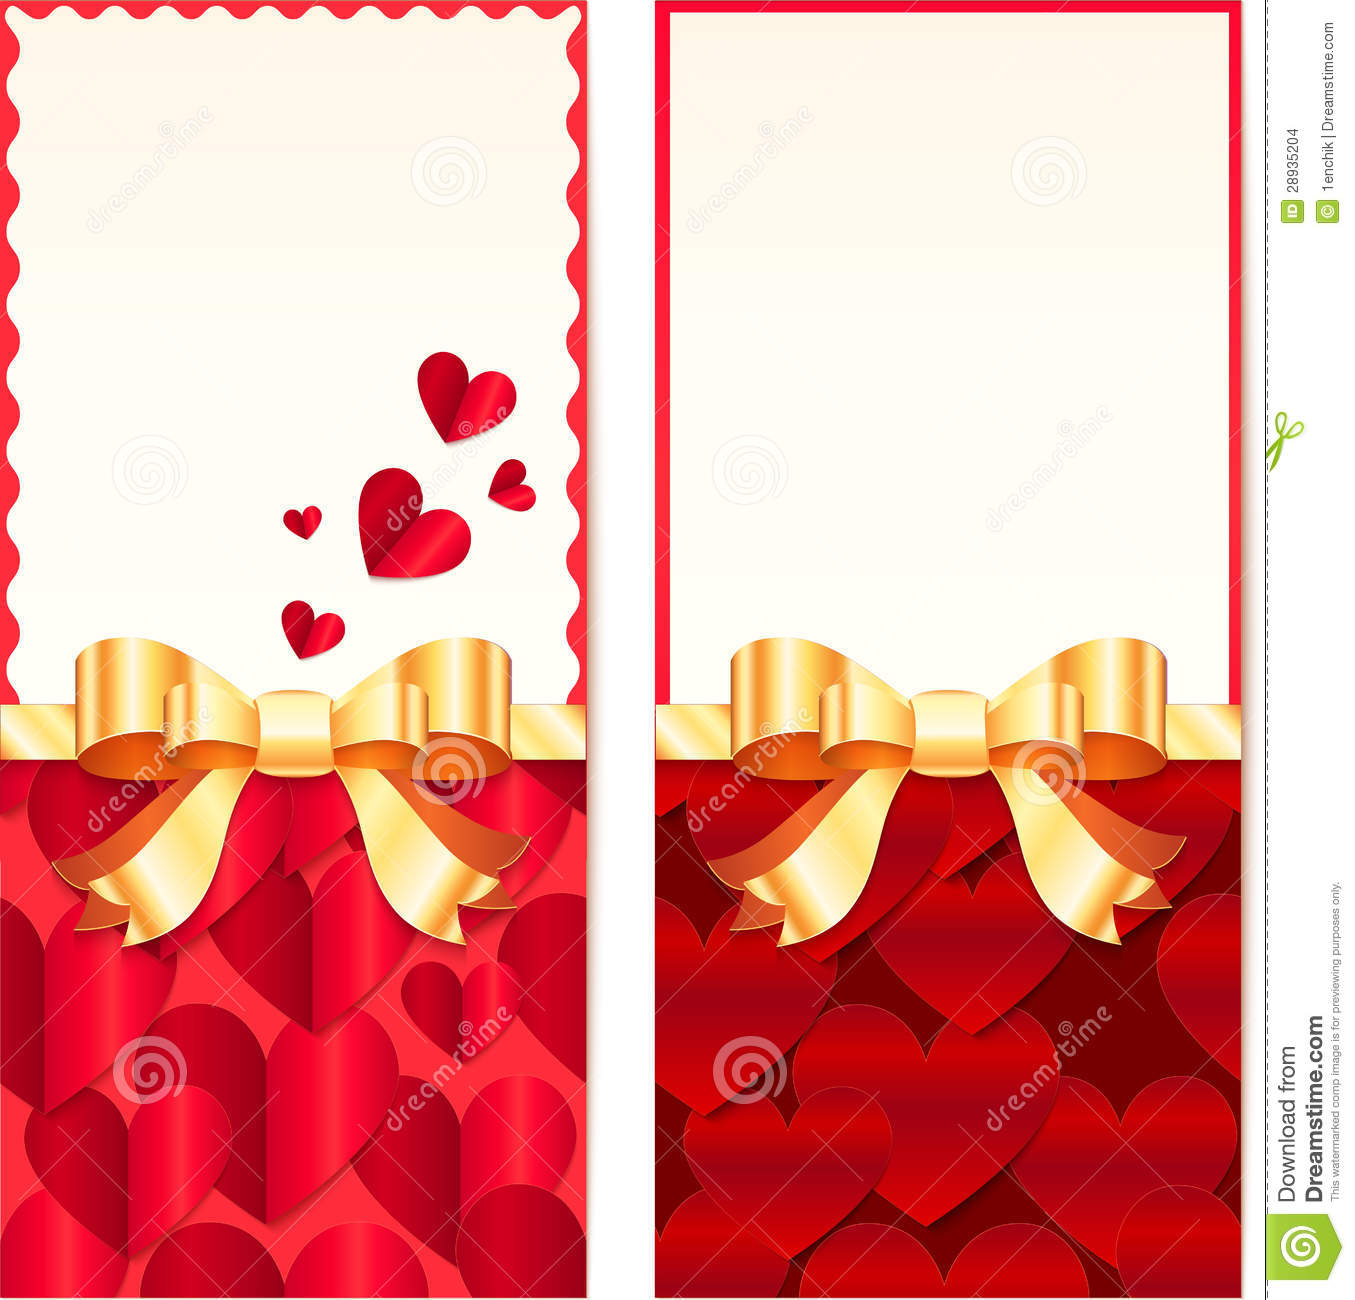 valentines day greeting cards templates stock illustration